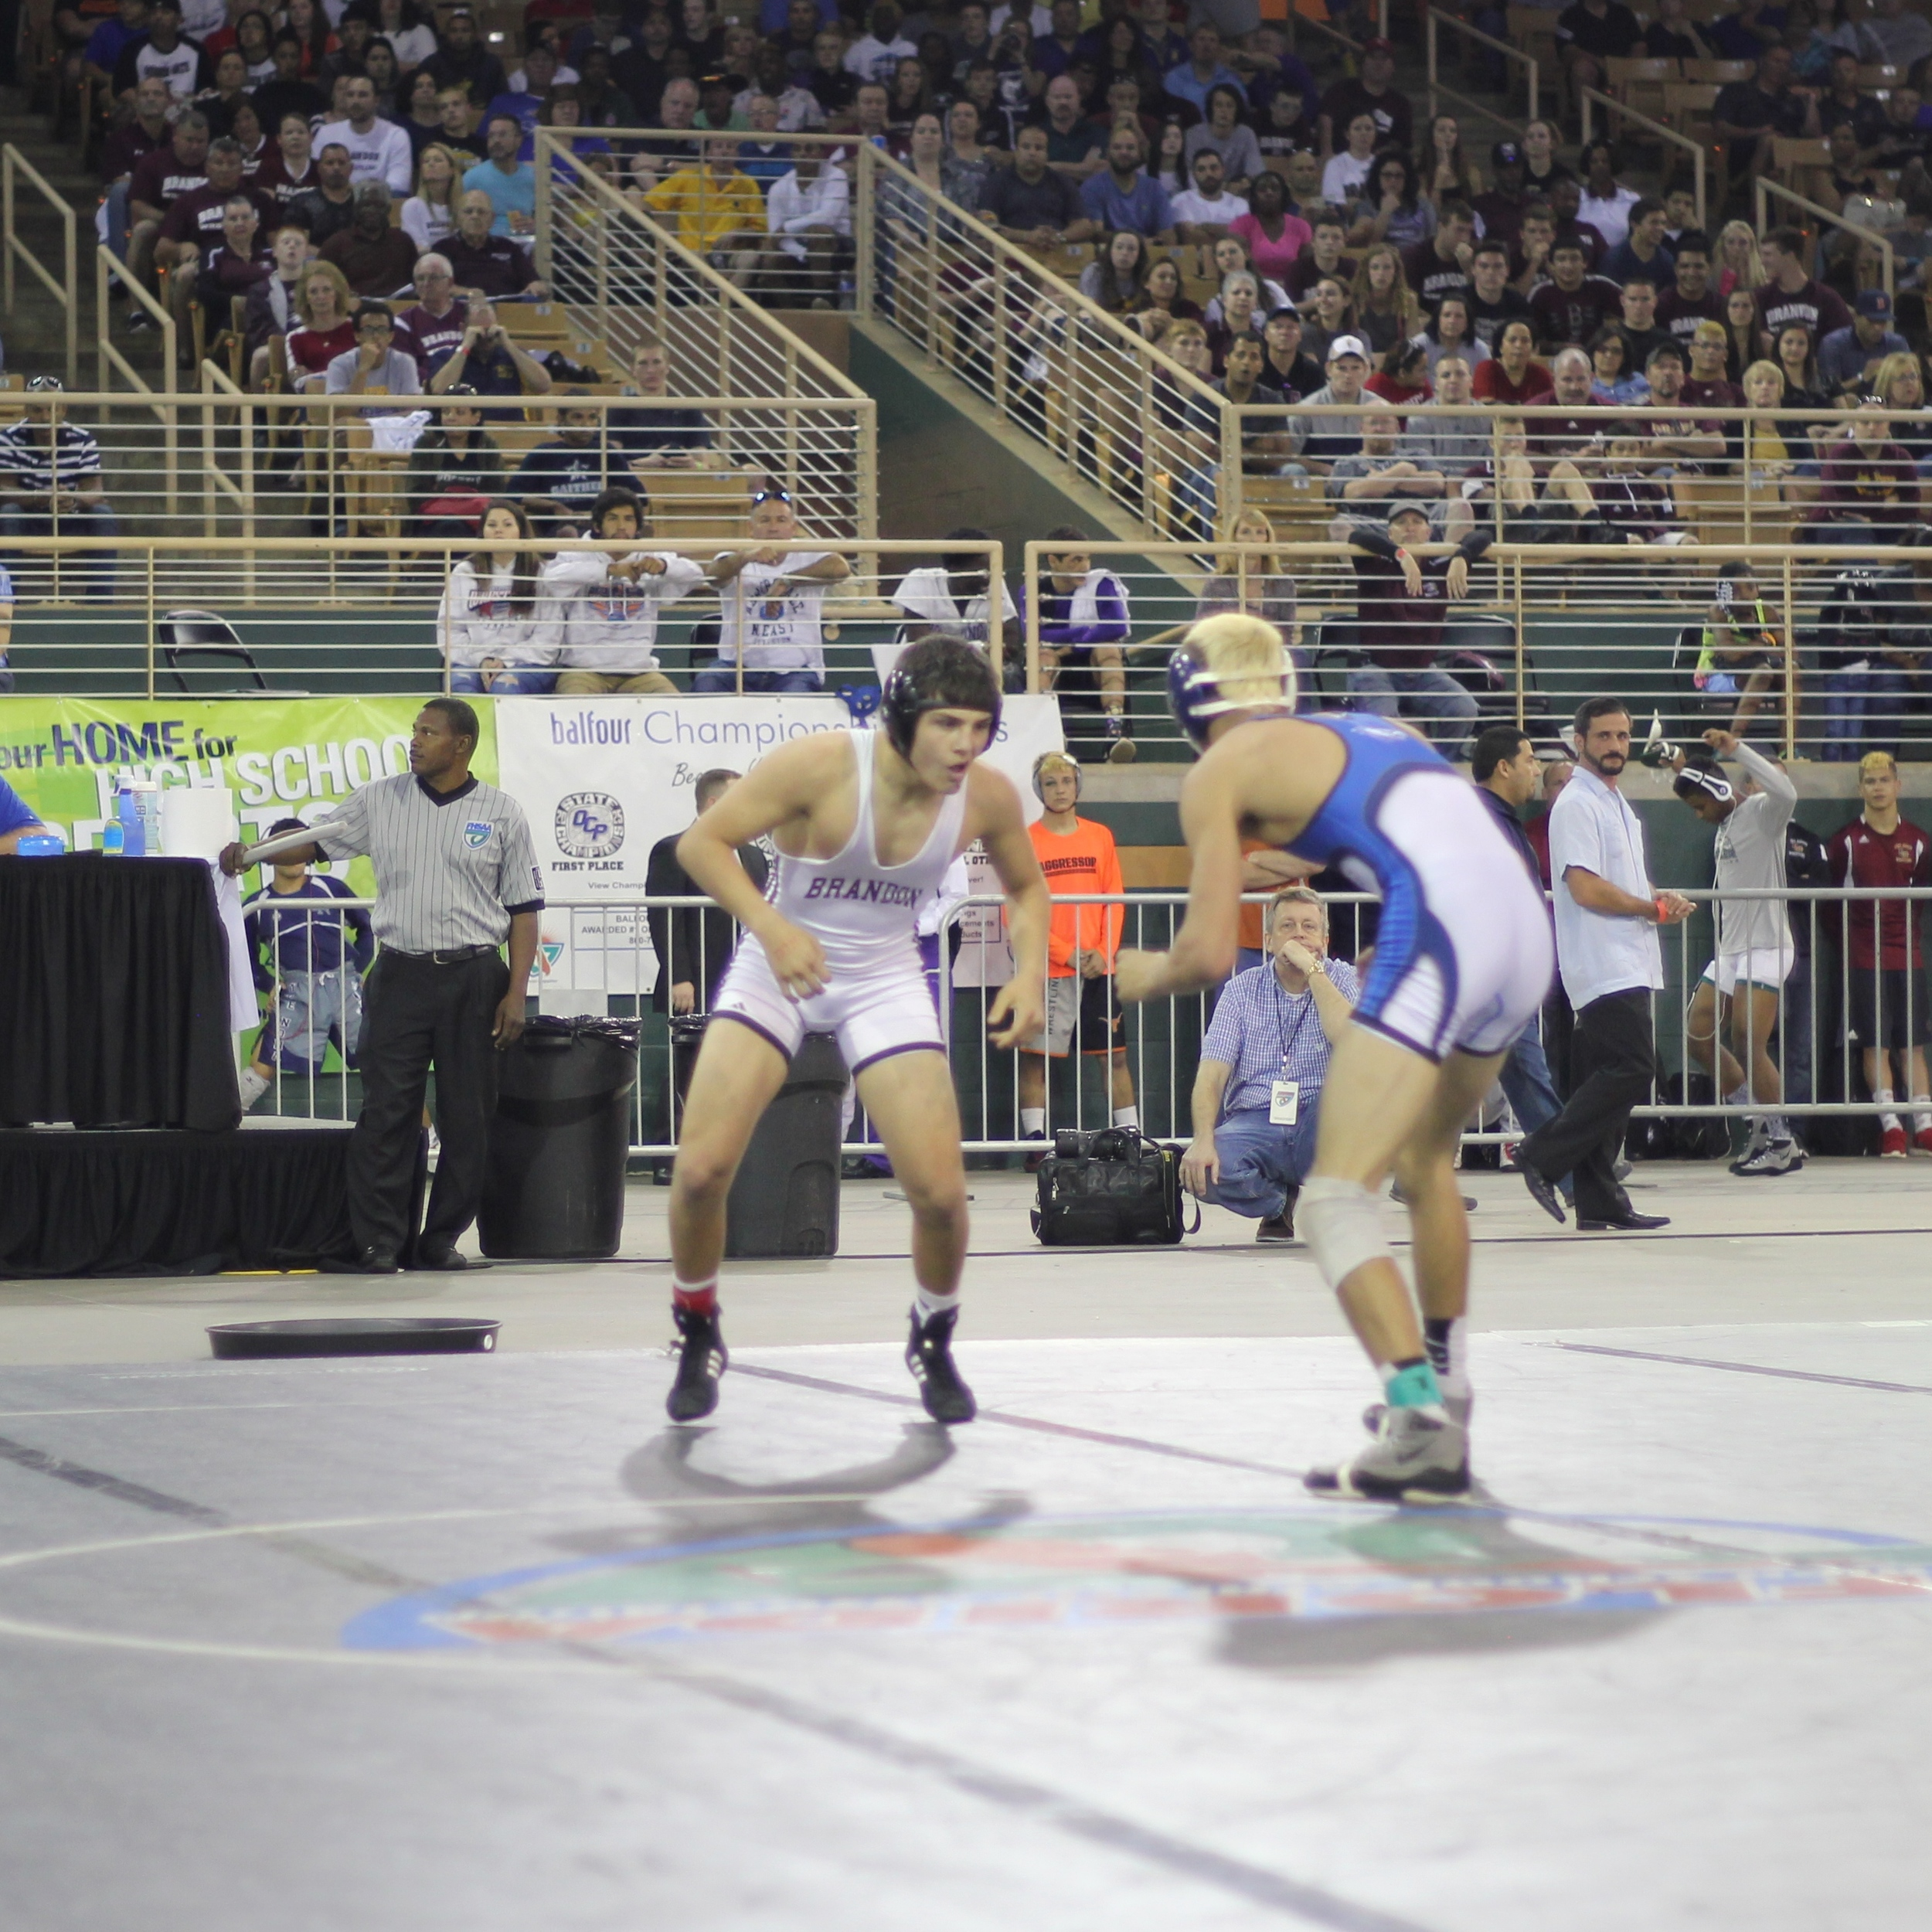 McDonald beat Bruno 5-2 to win the 2015 2A 126 lb. title